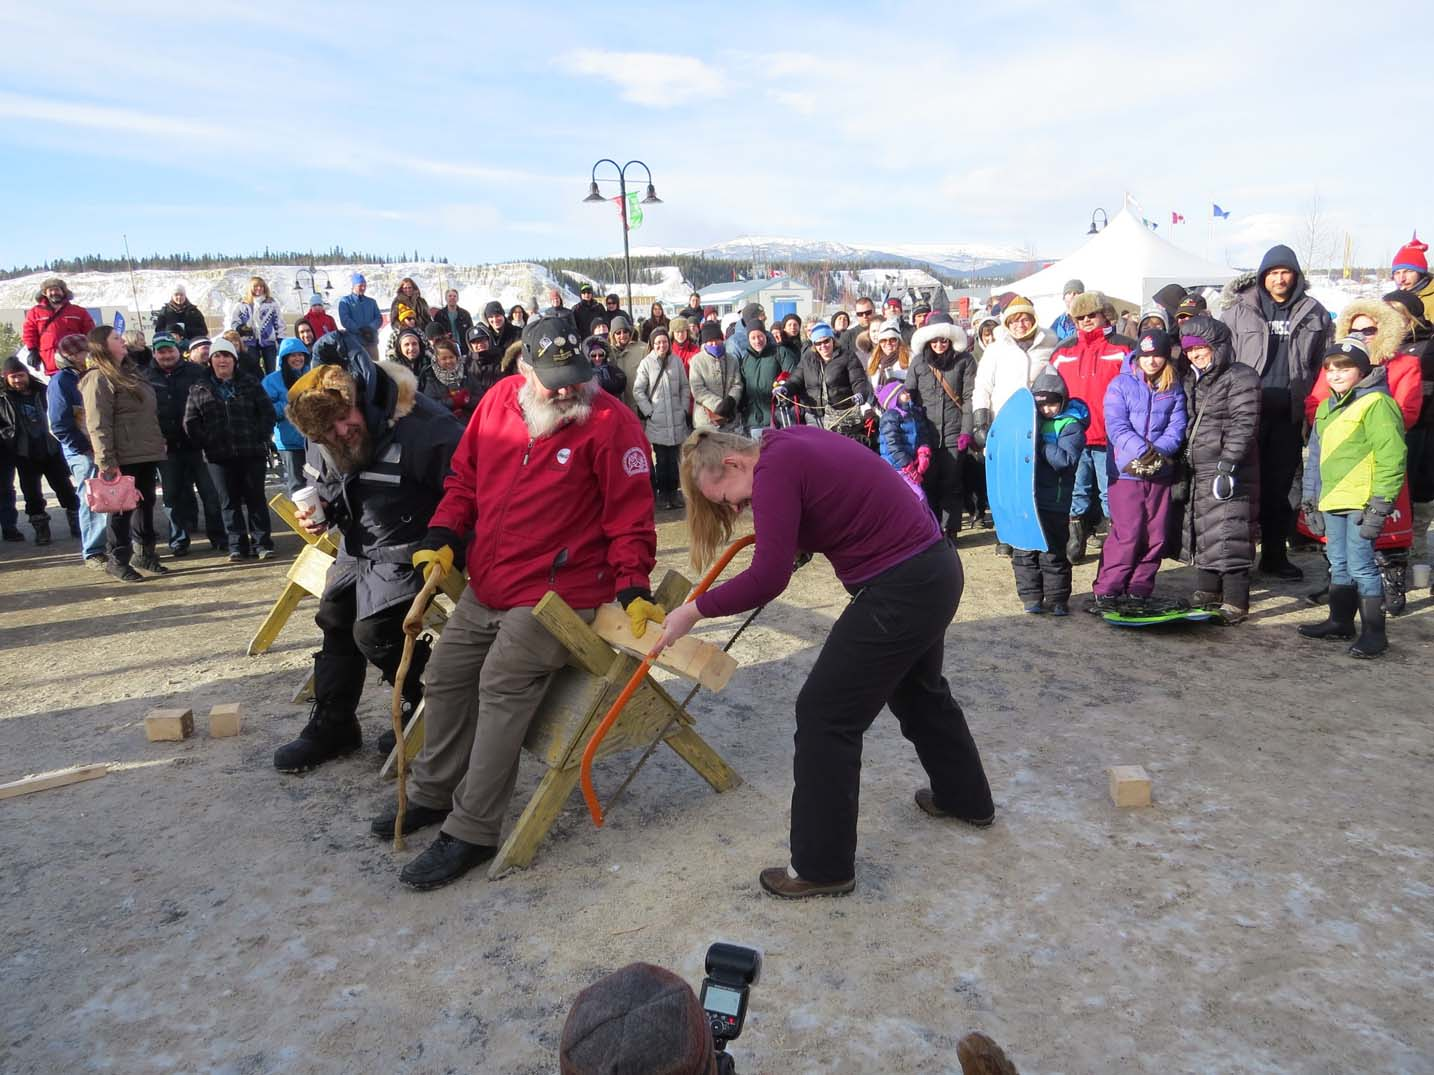 Woman sawing a log in front of a crowd